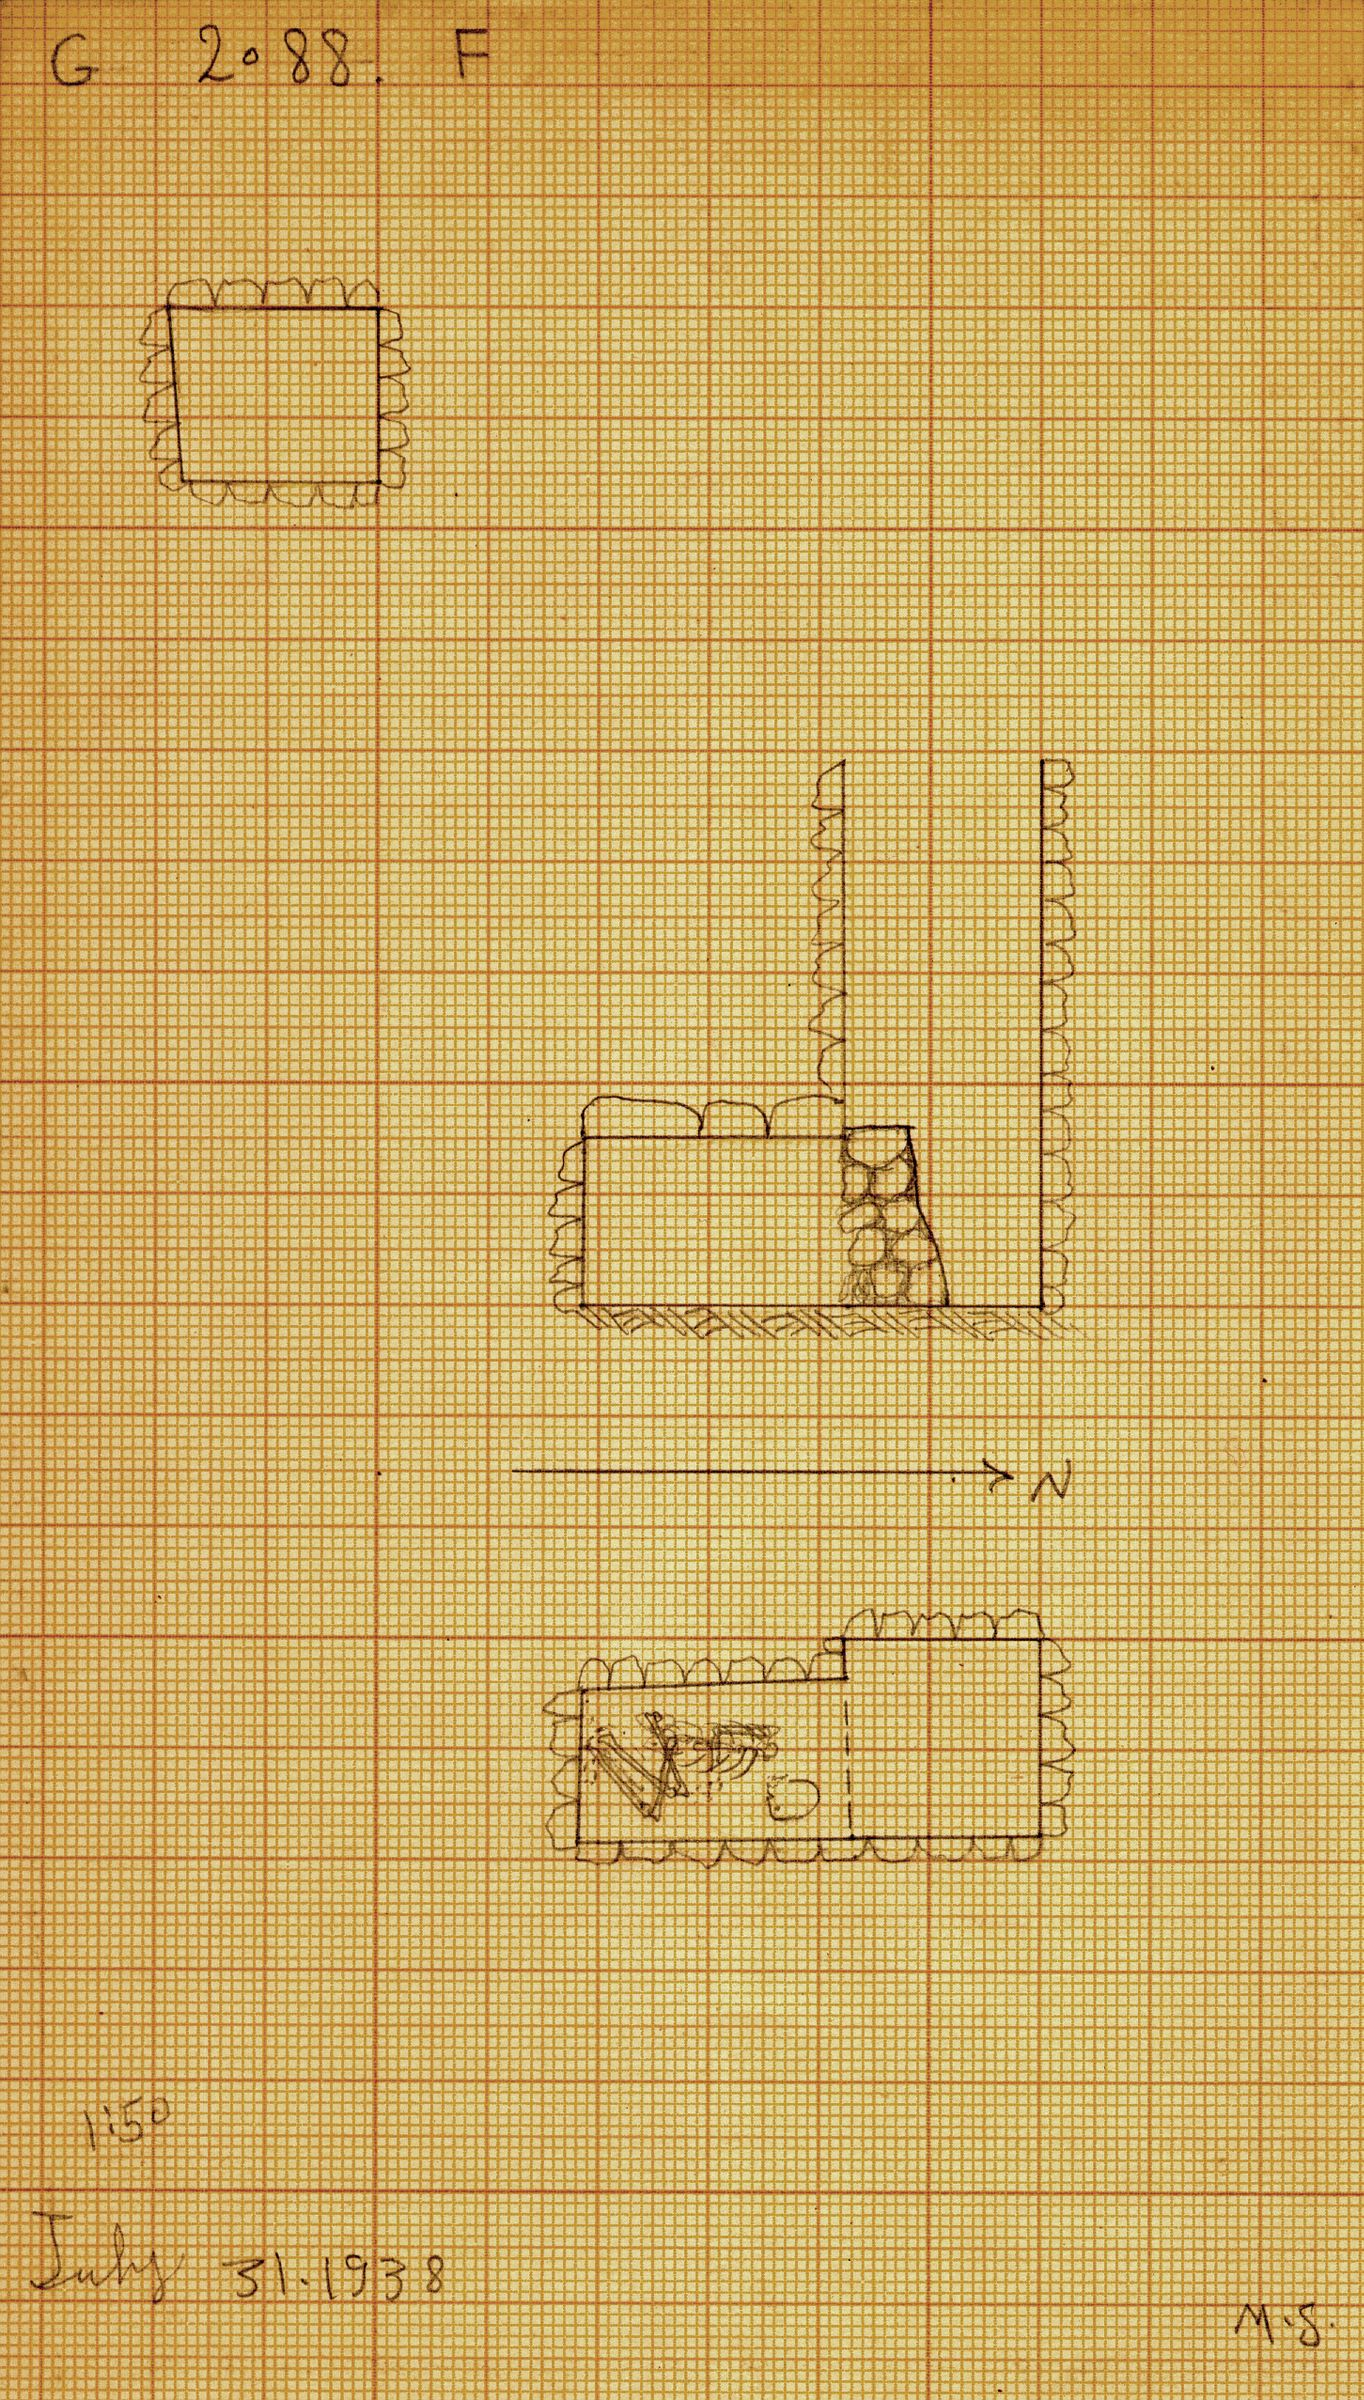 Maps and plans: G 2088, Shaft F